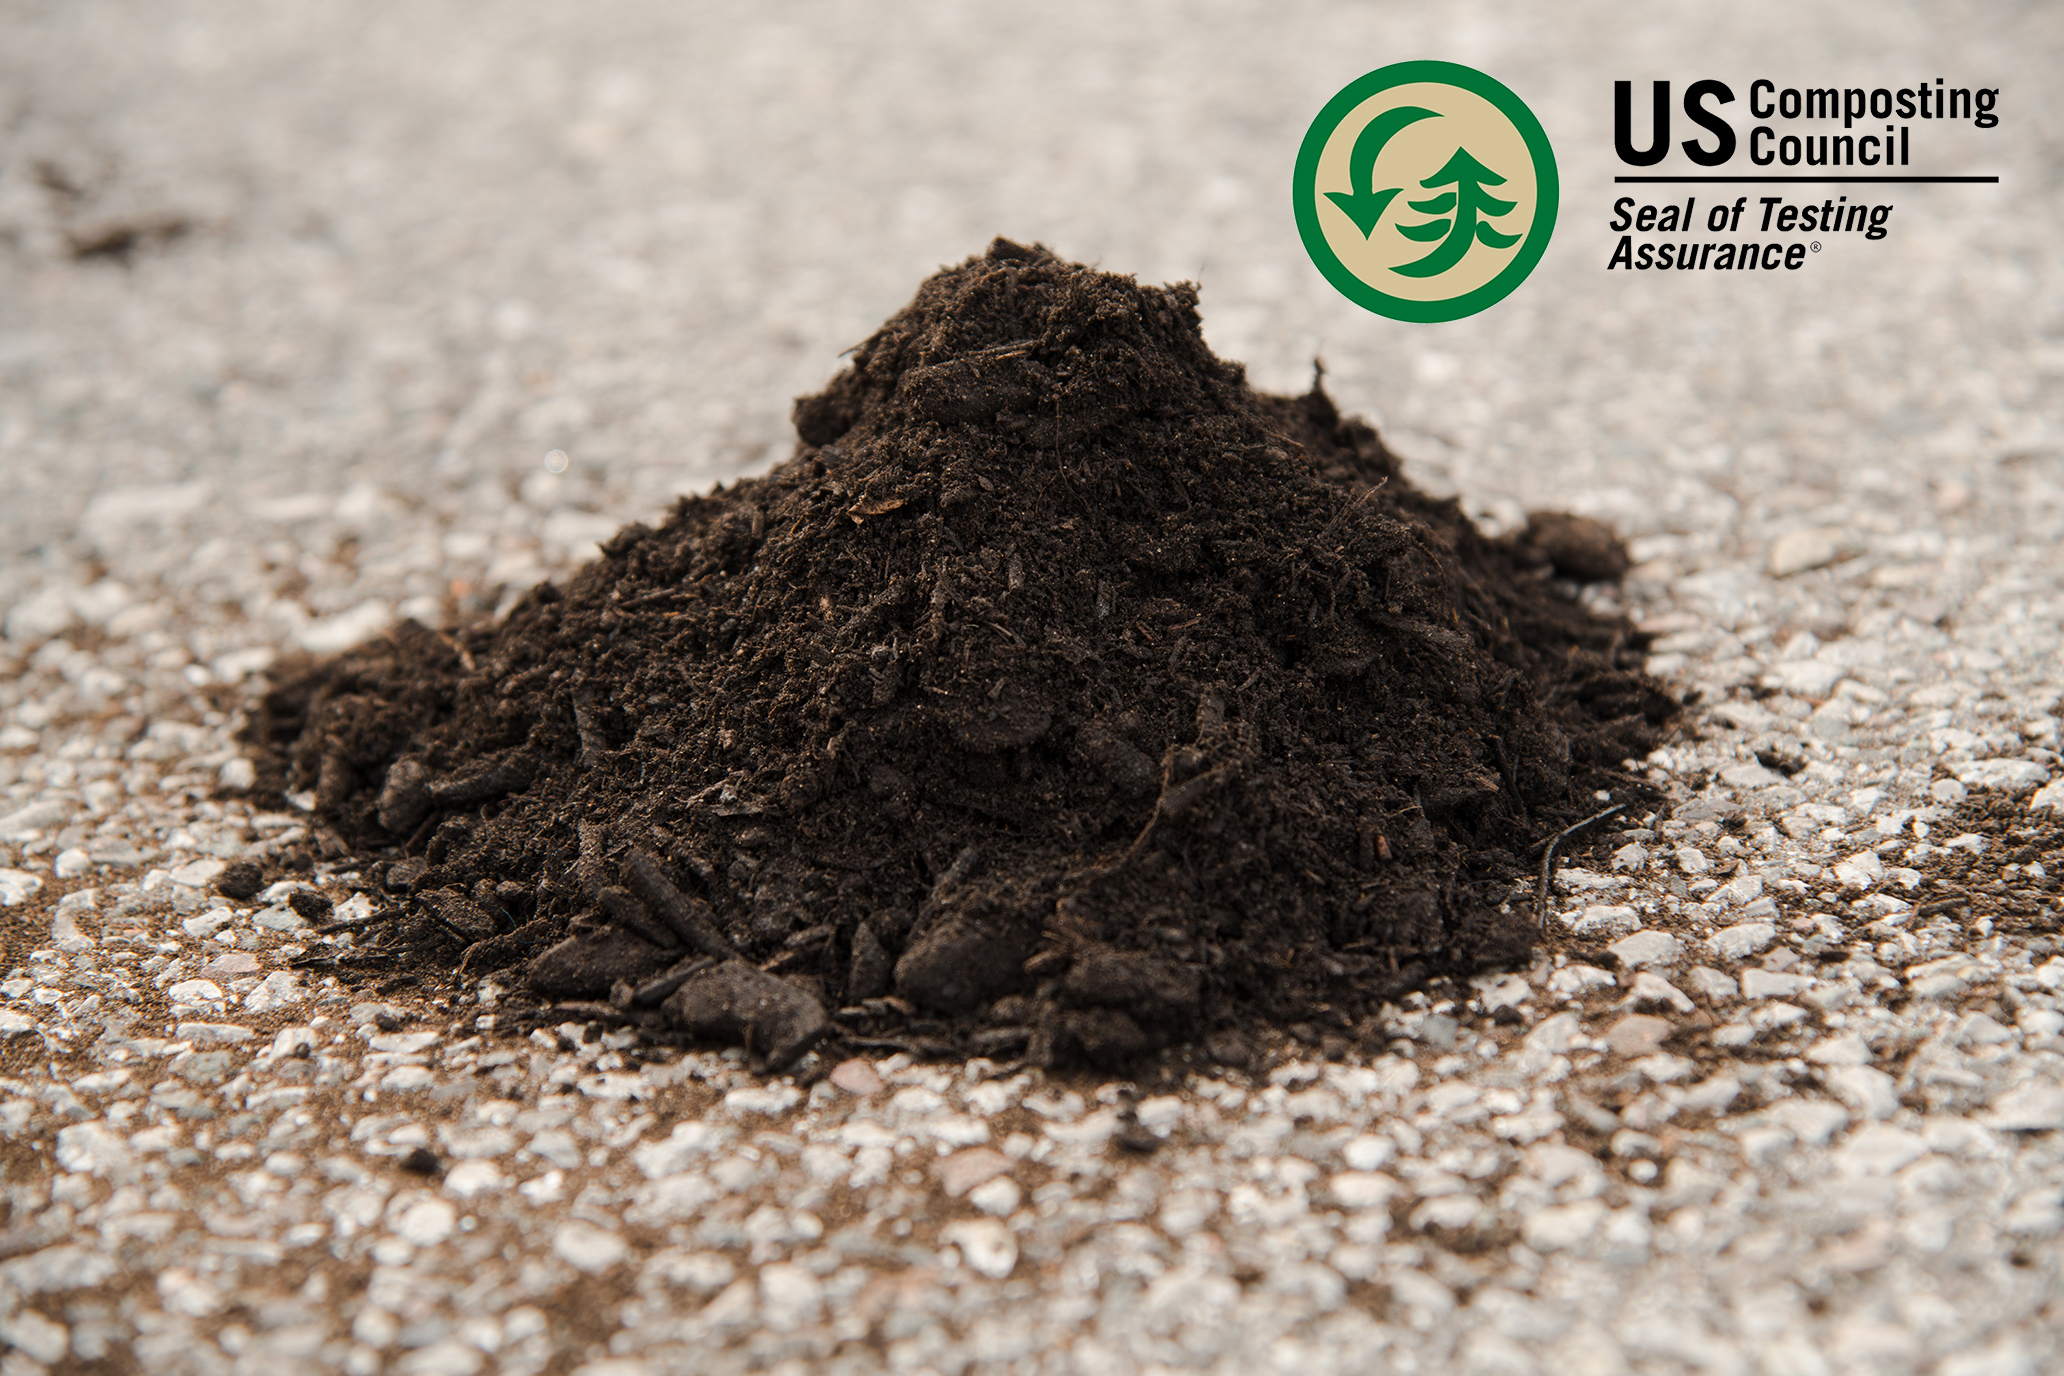 Natural Compost - A hearty, dark product consisting of fully composted green waste that is turned and processed through a trommel screen continually throughout the aging process. This compost holds the Seal of Testing Assurance from the US Composting Council.